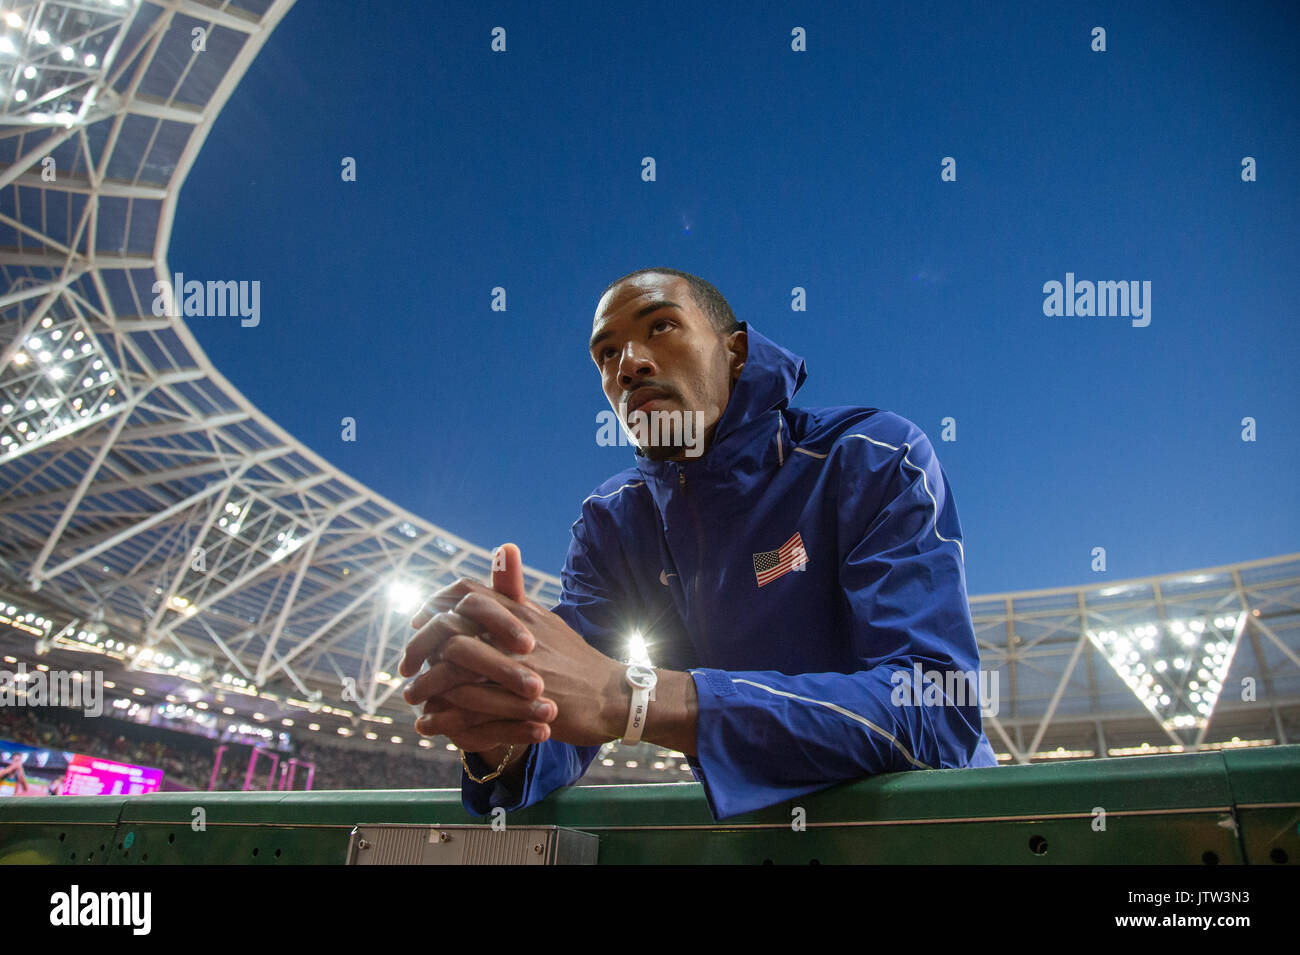 London, UK. 10th August, 2017. CHRISTIAN TAYLOR of USA during the Triple Jump in which he wins Gold during the IAAF World Athletics Championships 2017 - Day 7 at the Olympic Park, London, England on 10 August 2017. Photo by Andy Rowland. Credit: Andrew Rowland/Alamy Live News - Stock Image